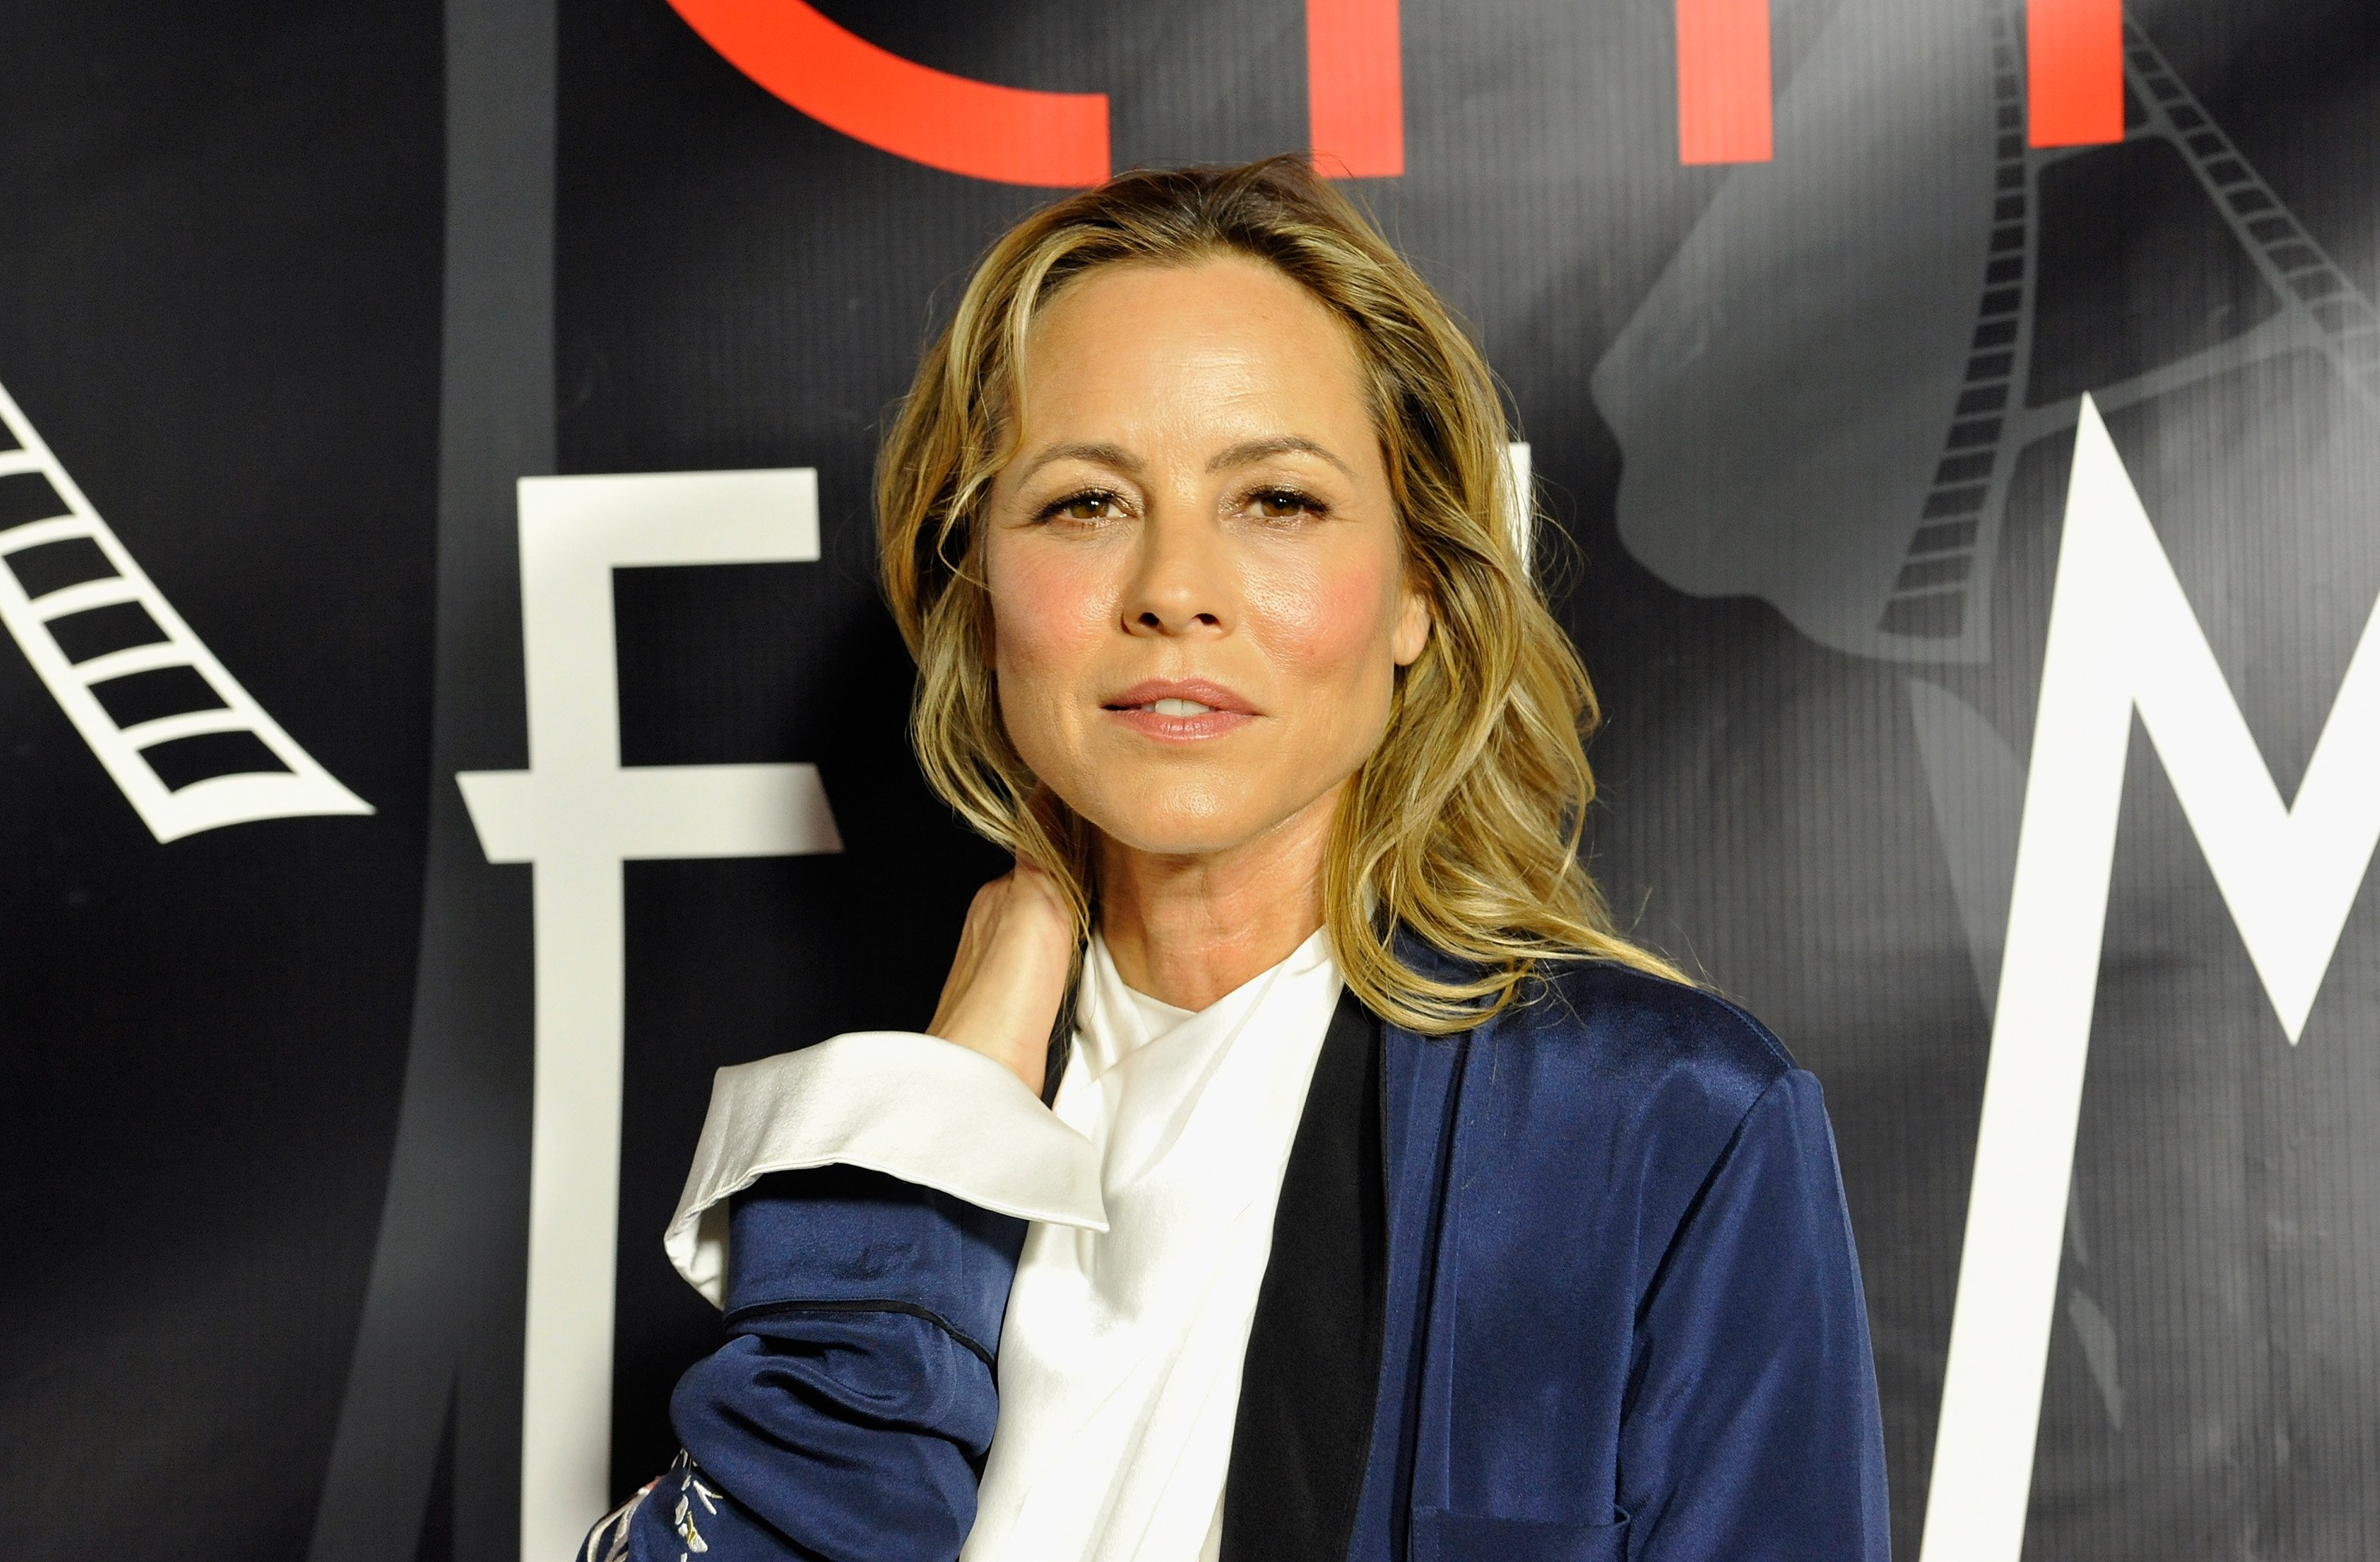 Maria Bello attends the 4th Annual CineFashion Film Awards at El Capitan Theatre on October 8, 2017 | Photo: GettyImages